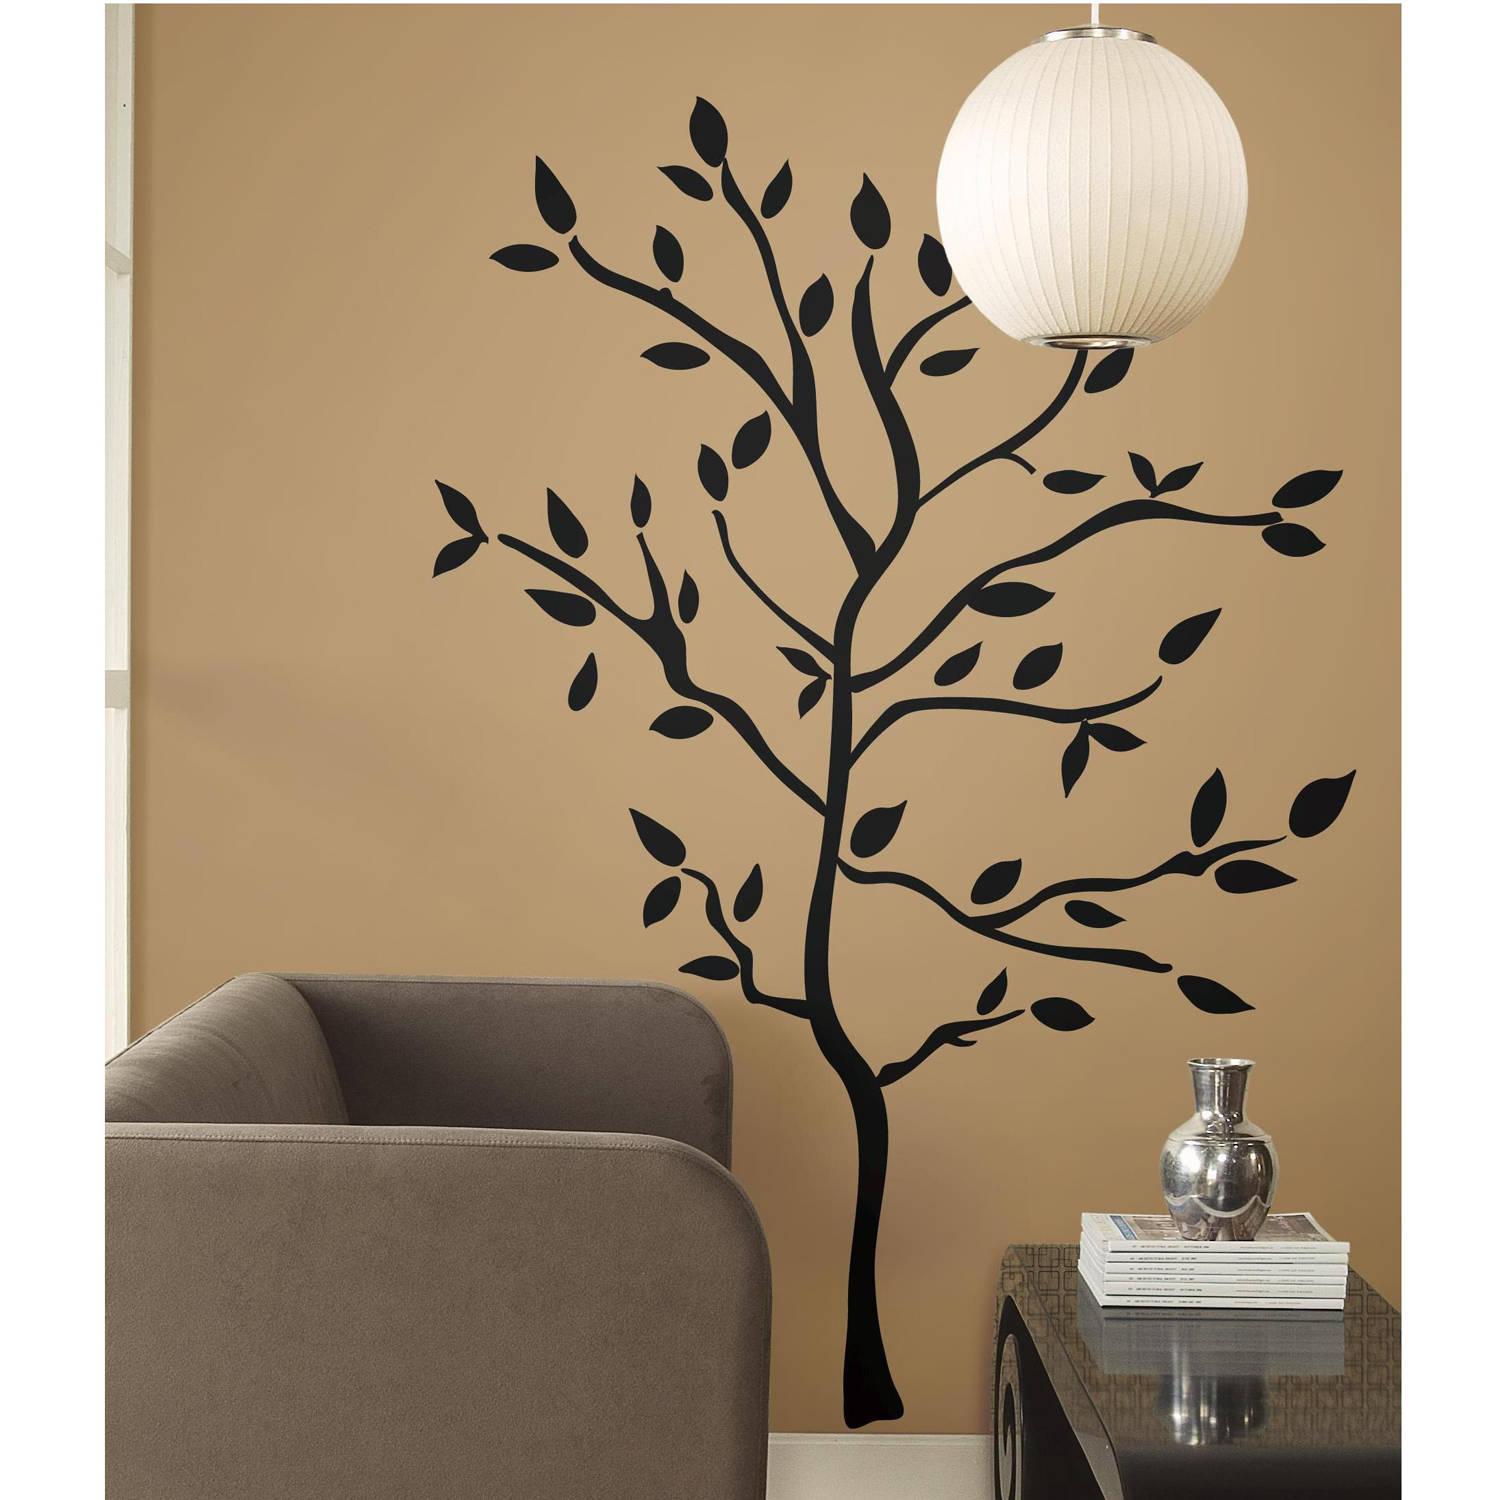 Delicieux Tree Branches Peel And Stick Wall Decals